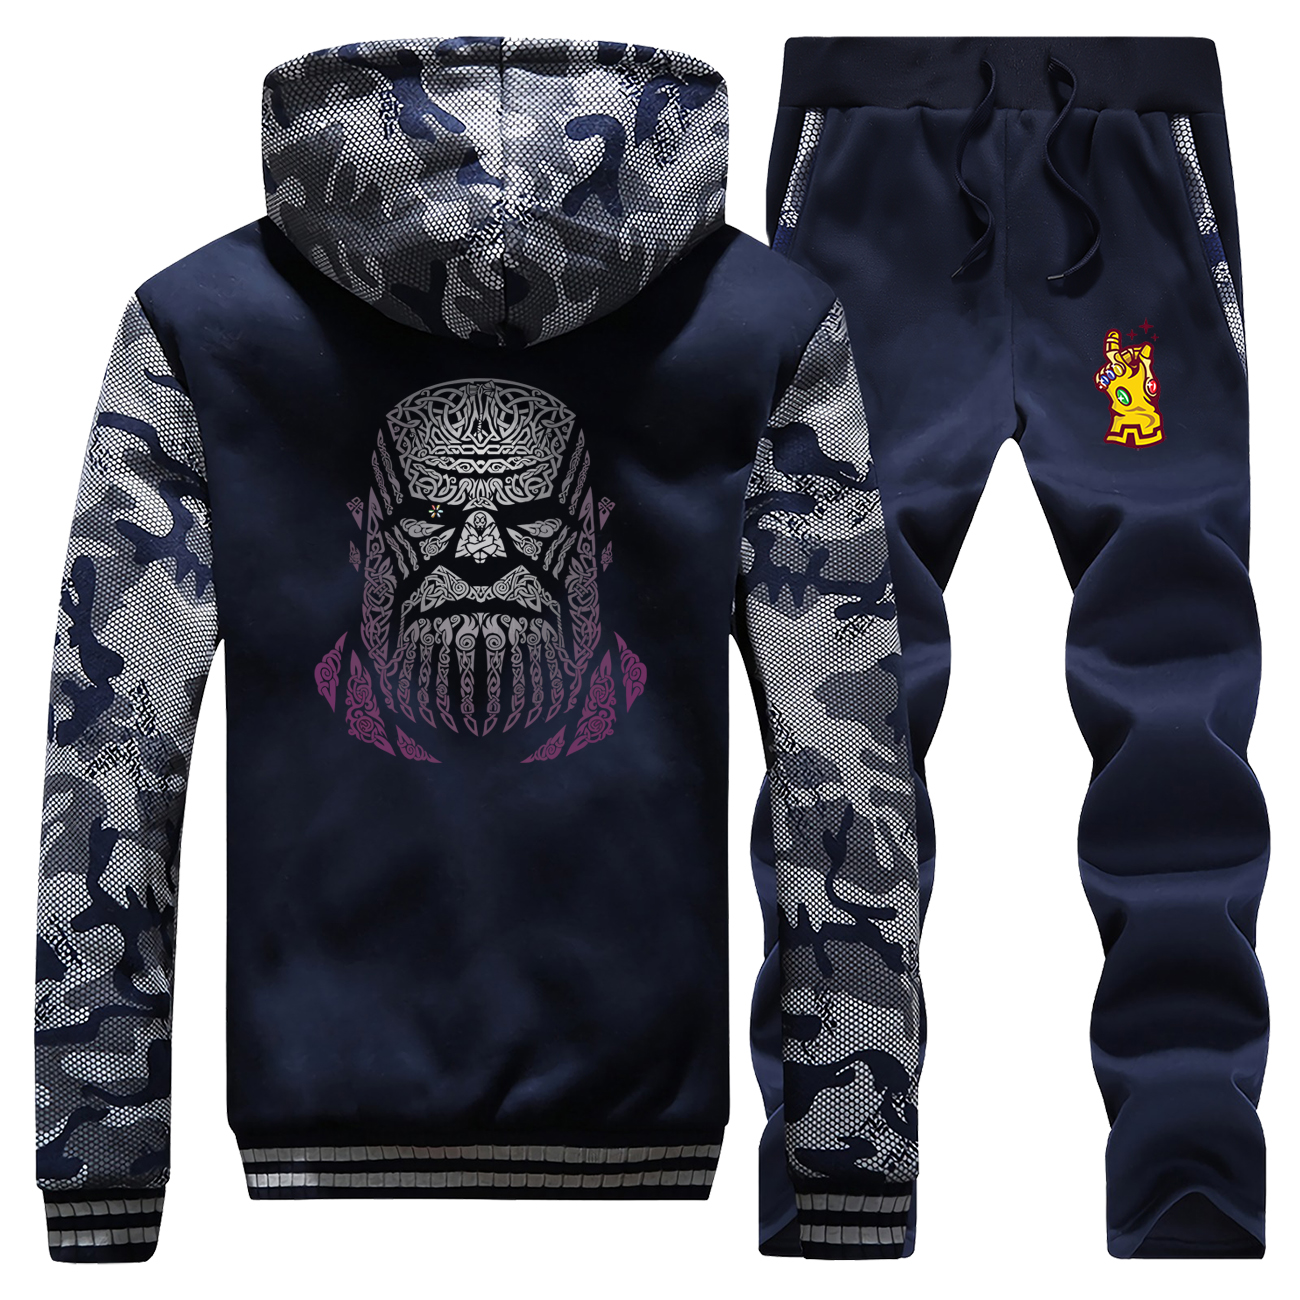 Warm Suit Men Winter Sweatshirt Hoodie+Pants 2 Piece Sets Men Thanos Hip Hop Thick Fleece Hoodies The Avengers Mens Tracksuit